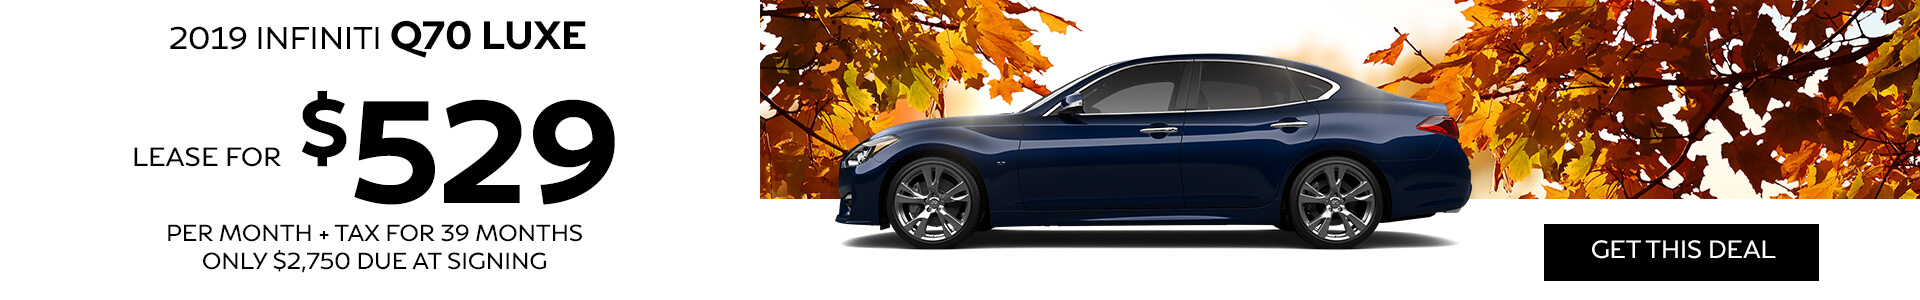 Q70 LUXE - Lease for 529